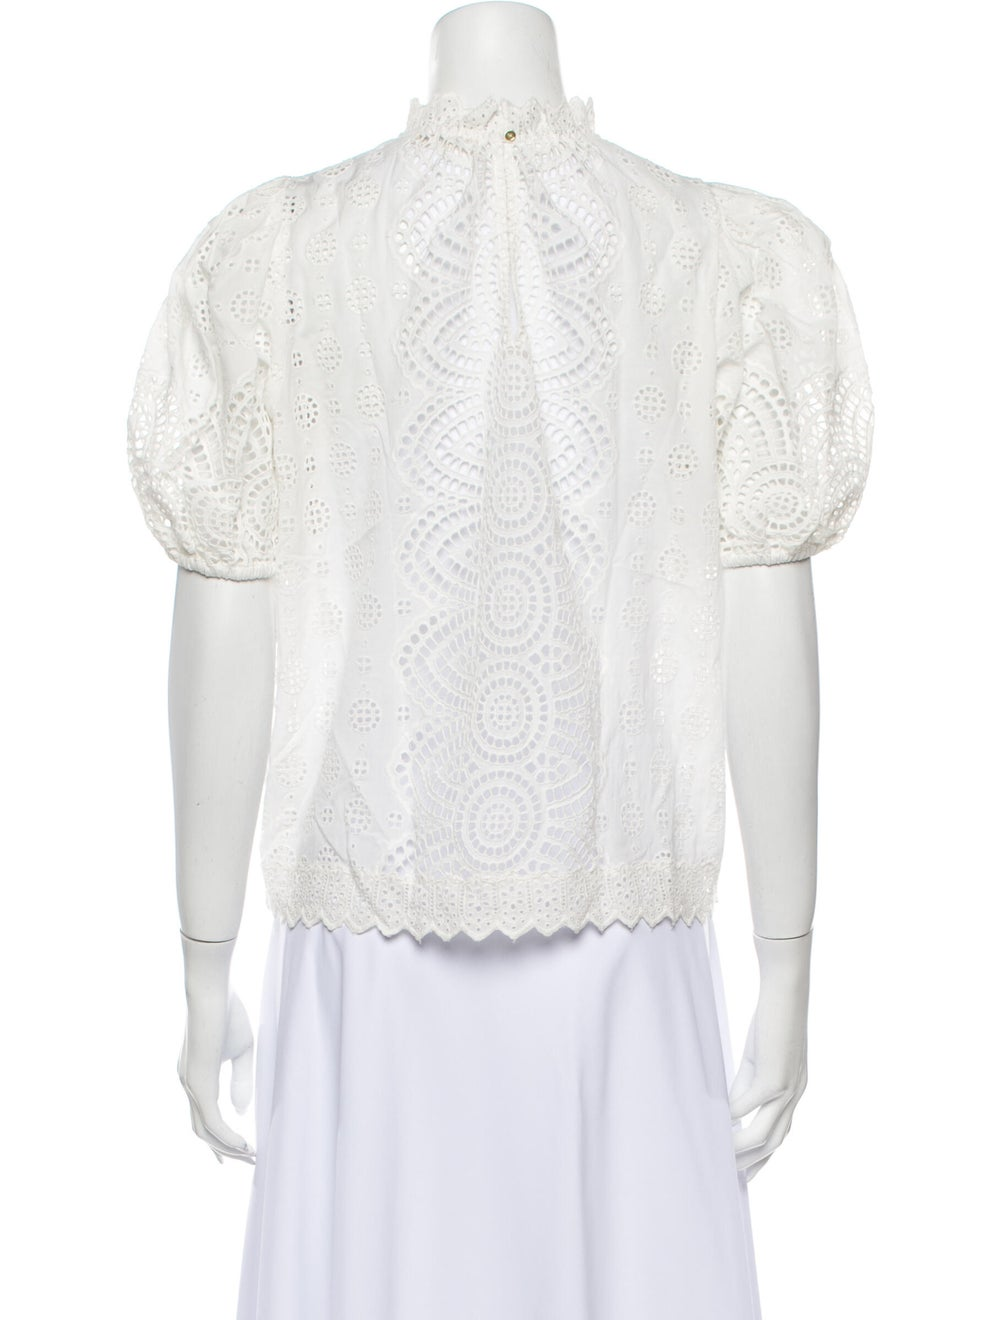 Ulla Johnson Lace Pattern Mock Neck Blouse White - image 3